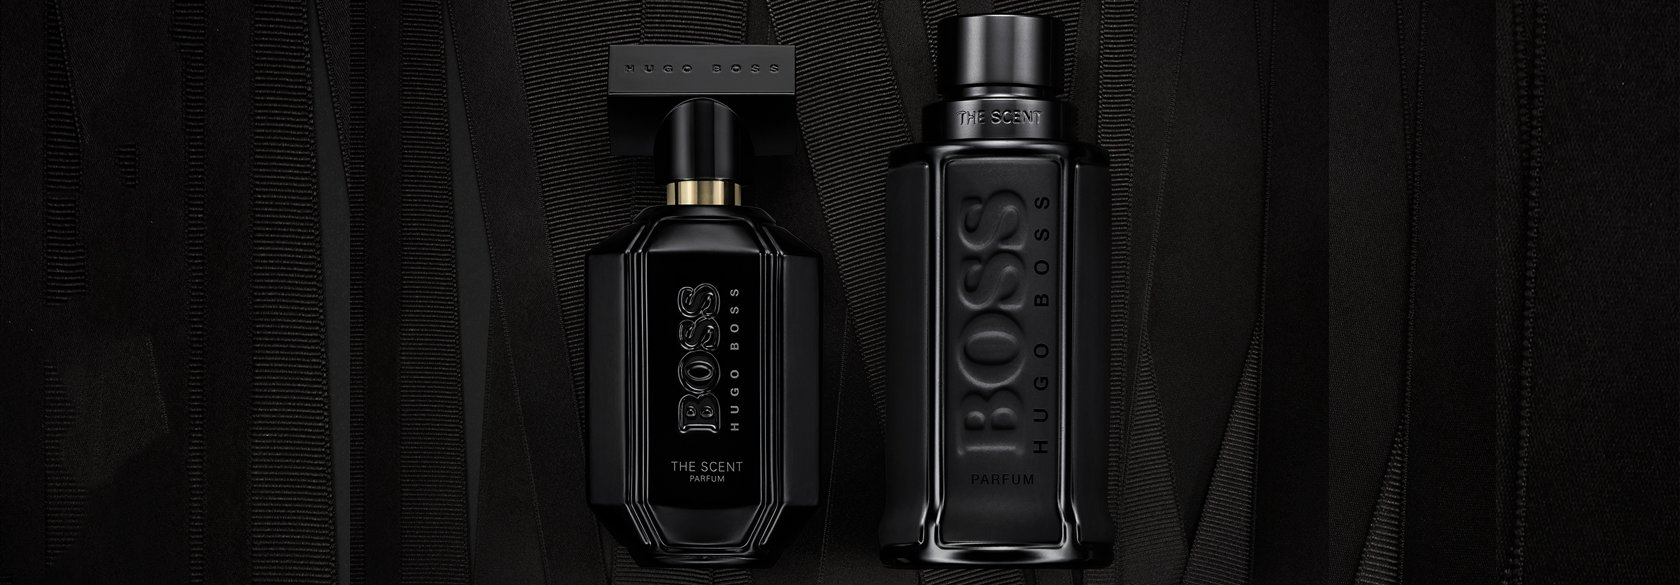 f94ed43d89b Black Flacon of BOSS The Scent Black Edition for him and for her ...